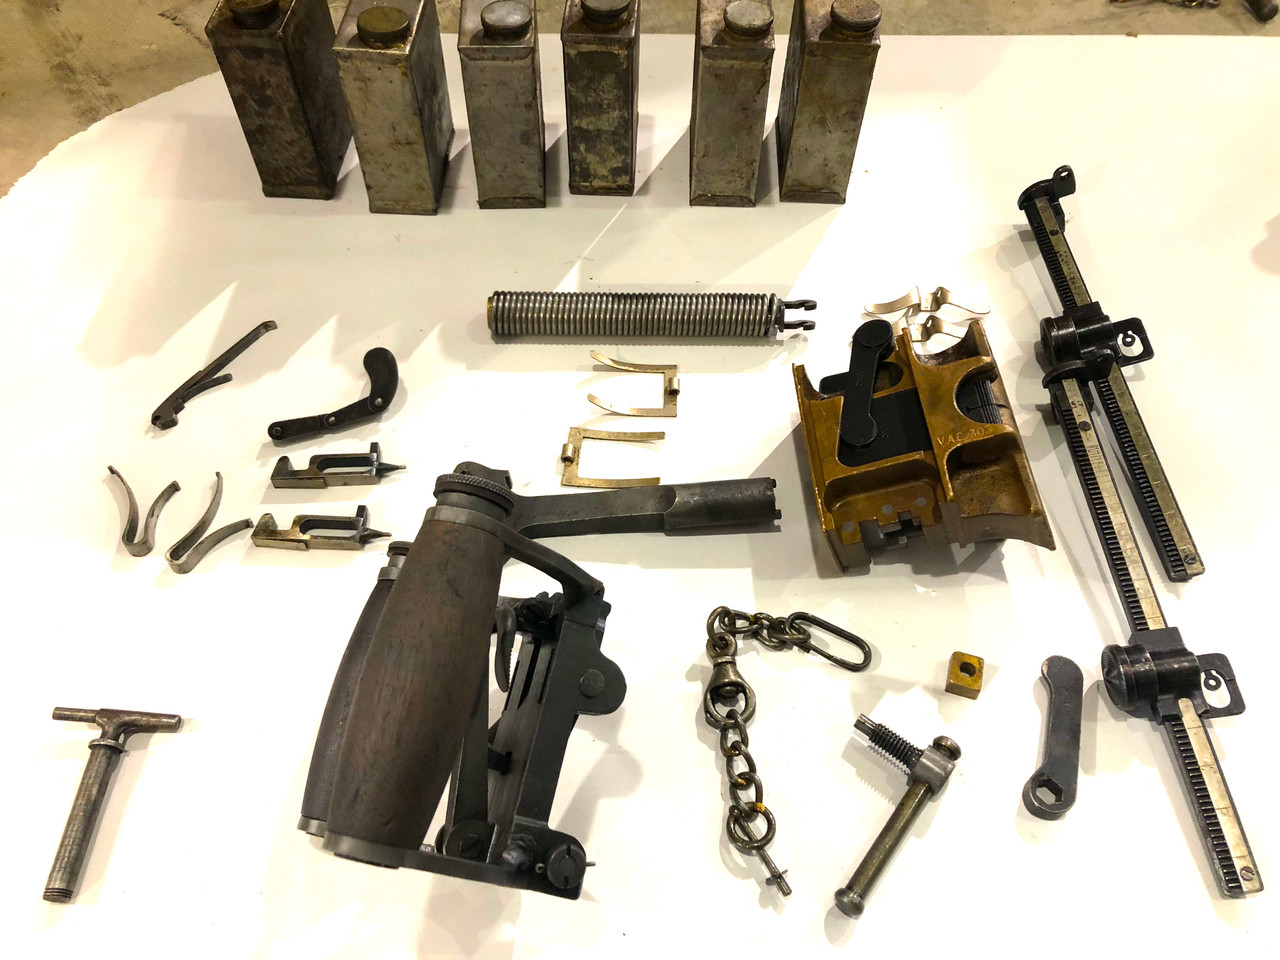 LOT 201009-04: Vickers MMG Rear Crosspiece - Grip Assembly (SHIPS Free)